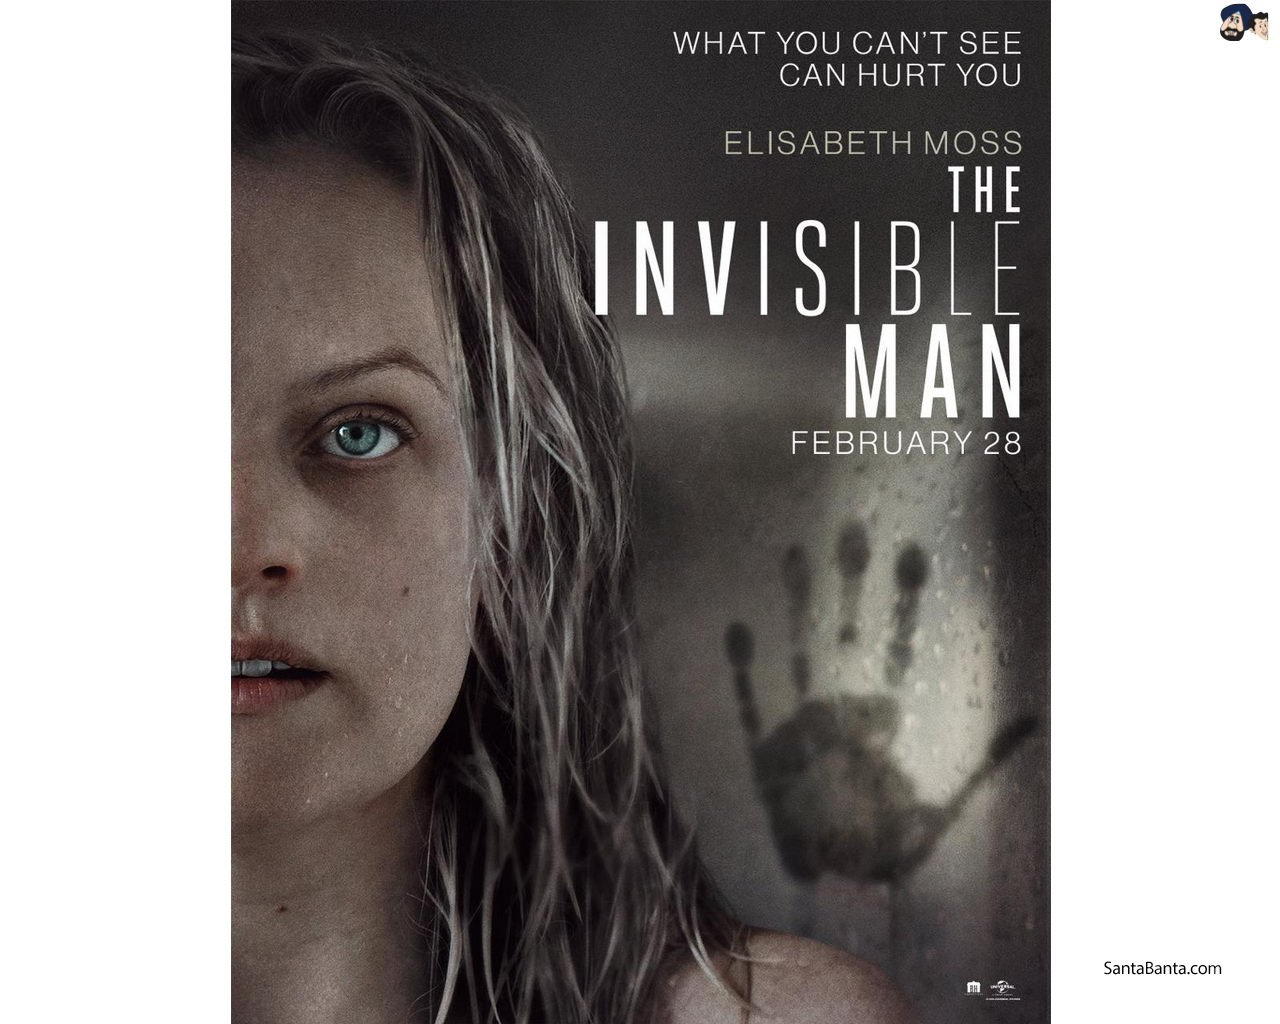 The Invisible Man Movie Wallpaper 9 1280x1024